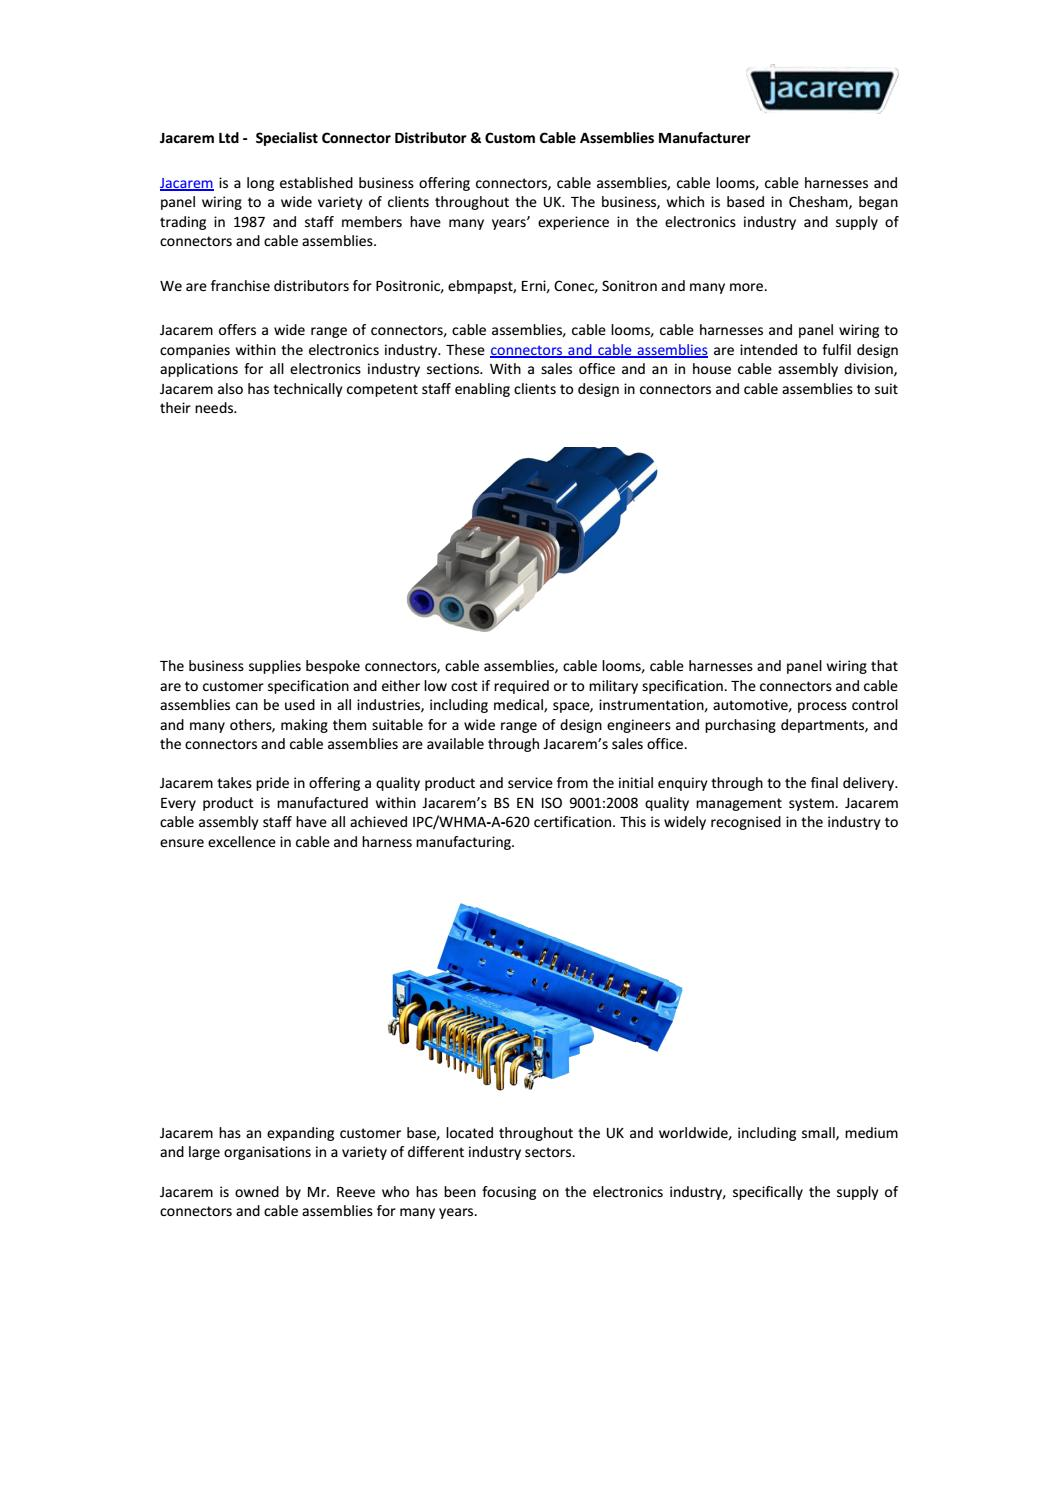 Jacarem Ltd Specialist Connector Distributor Custom Cable Wiring Harness Manufacturers Uk Assemblies Manufacturer By Issuu